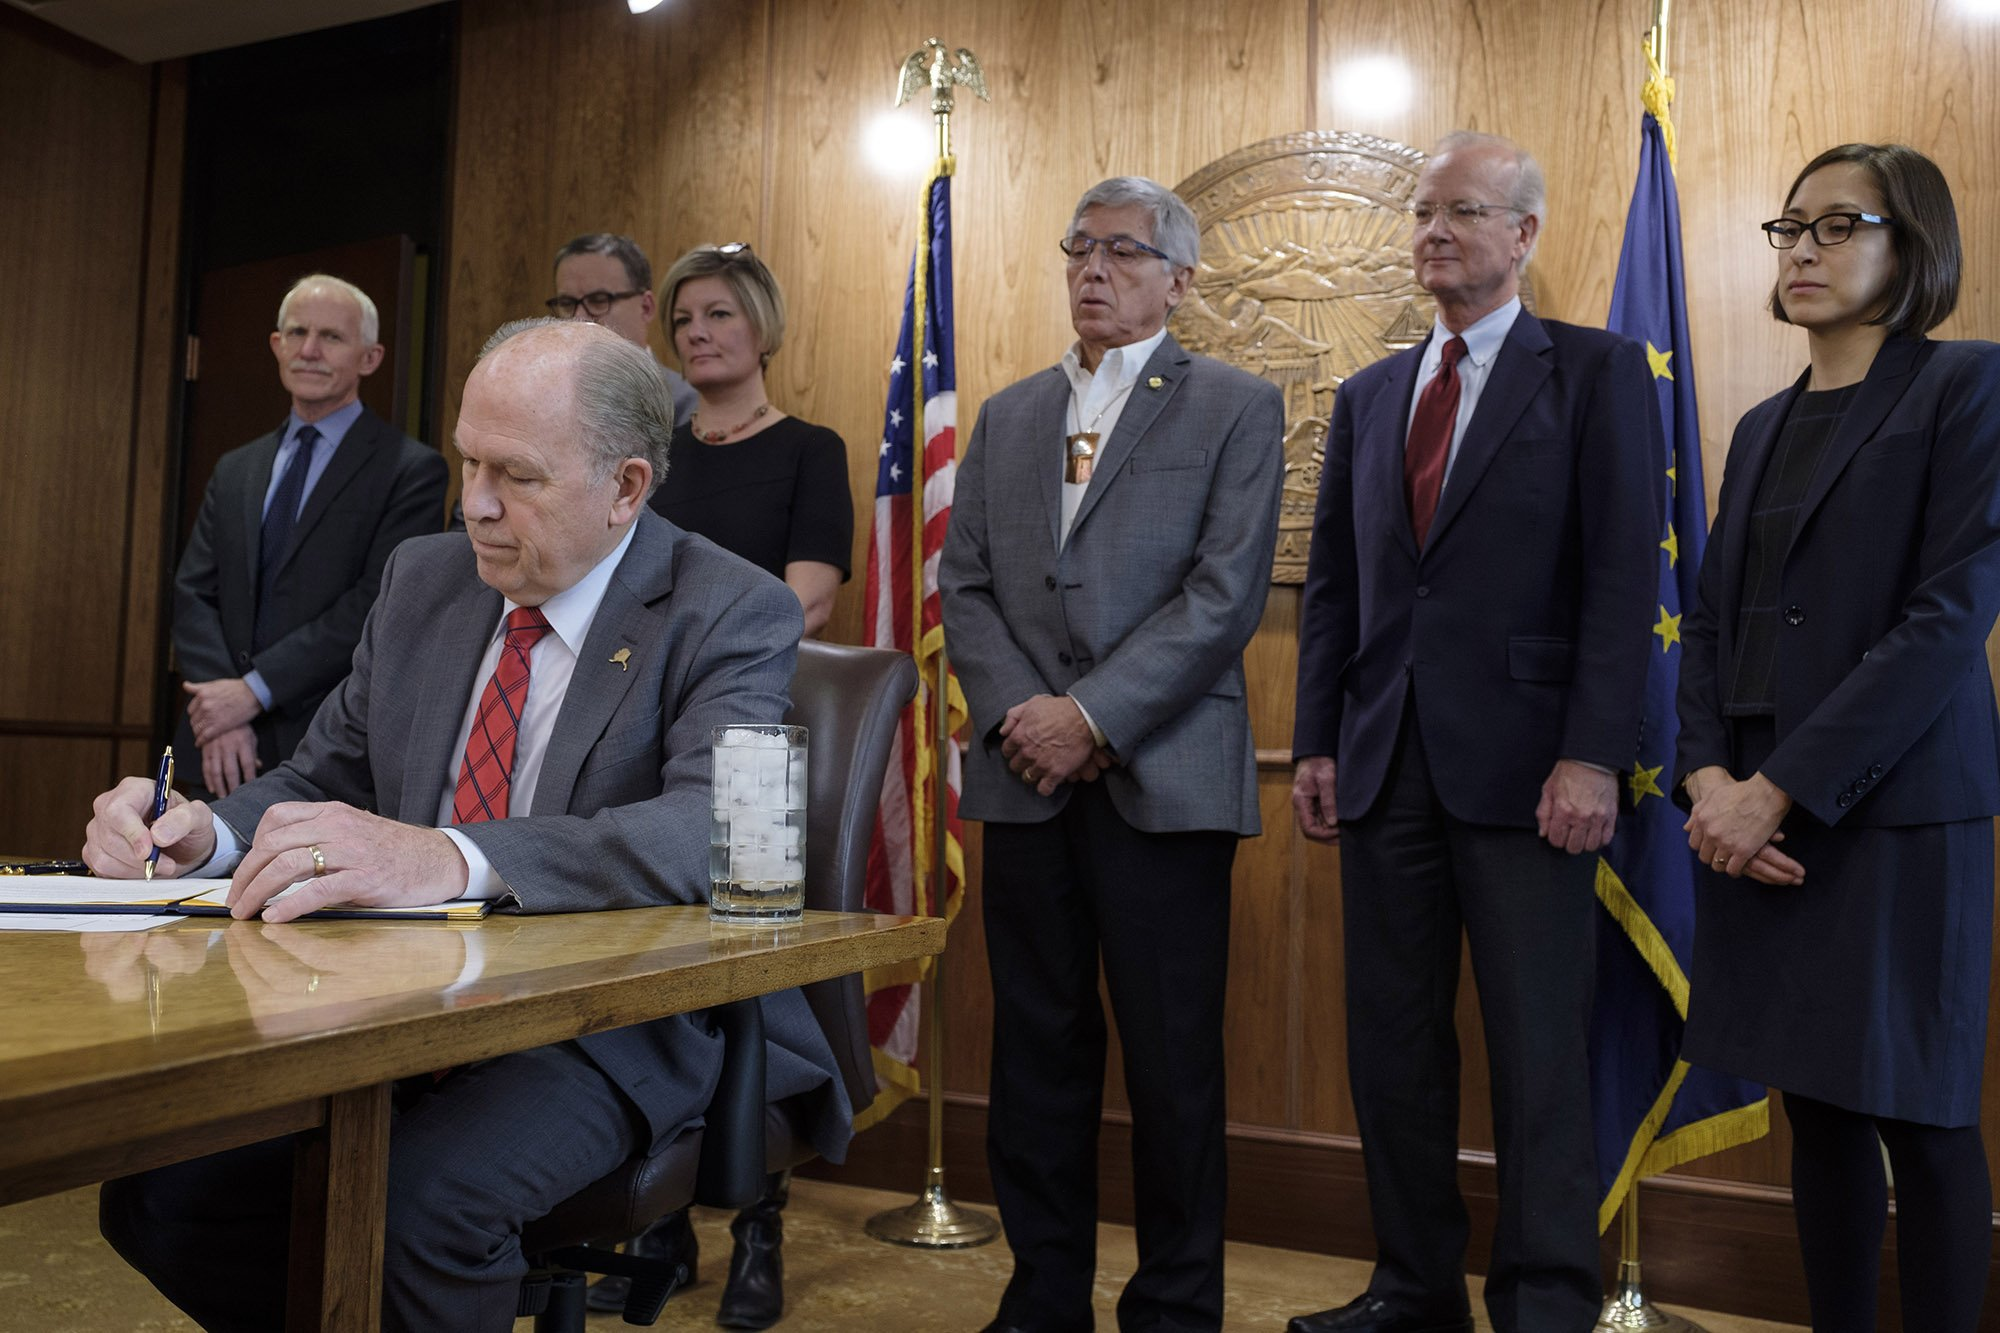 Alaska governor announces a plan for the state to meet Paris accord climate goals on its own